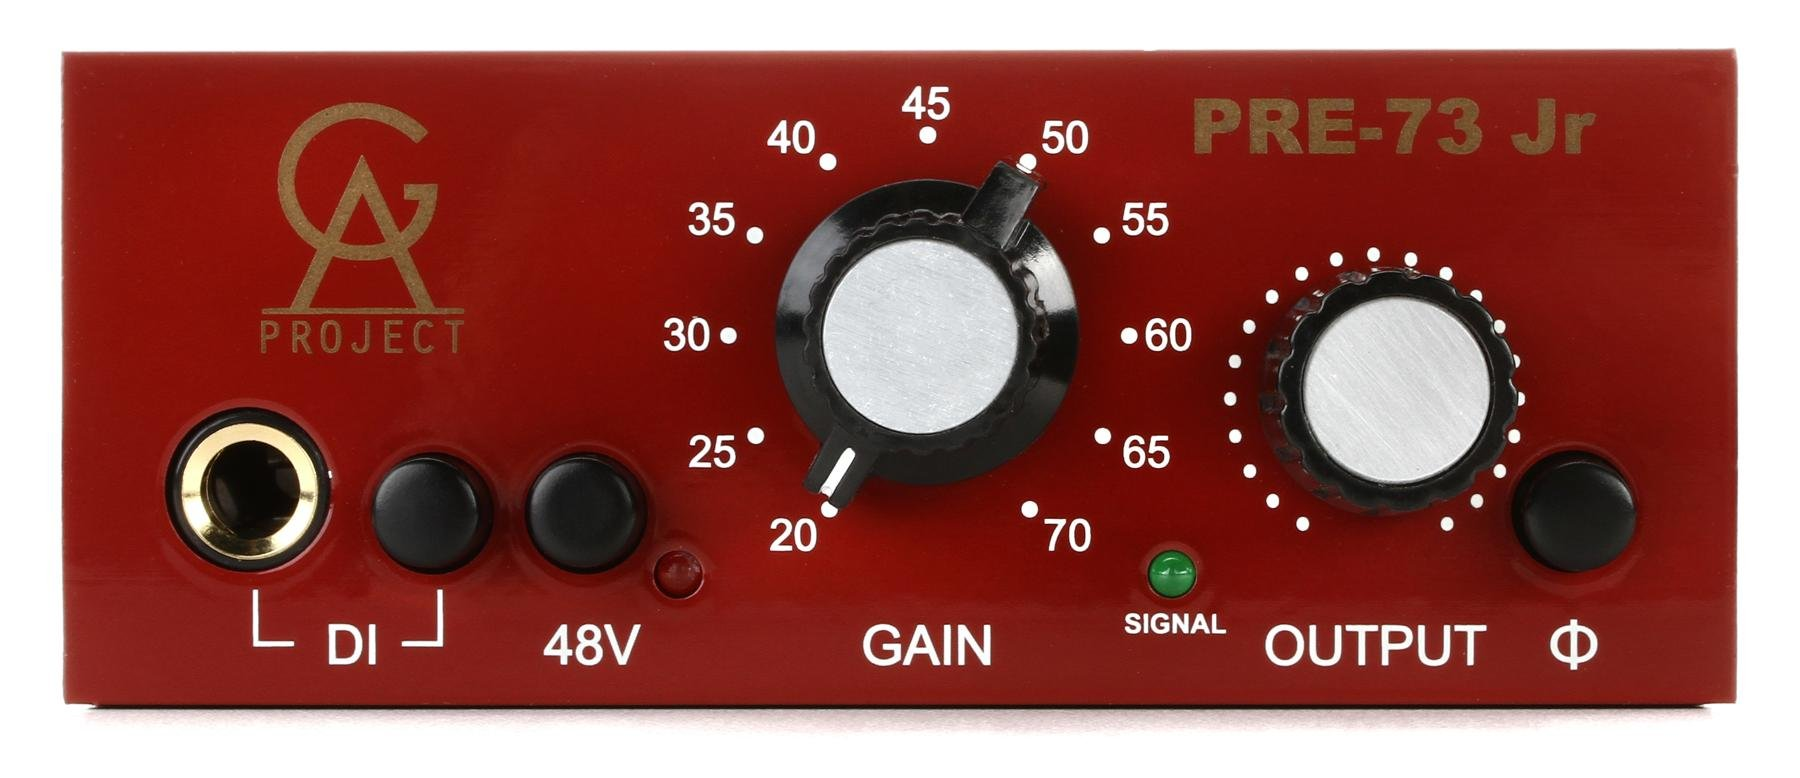 Golden Age Project Pre 73 Jr Mic Sweetwater Audio Preamplifiers Projects And Circuit 7 Image 1